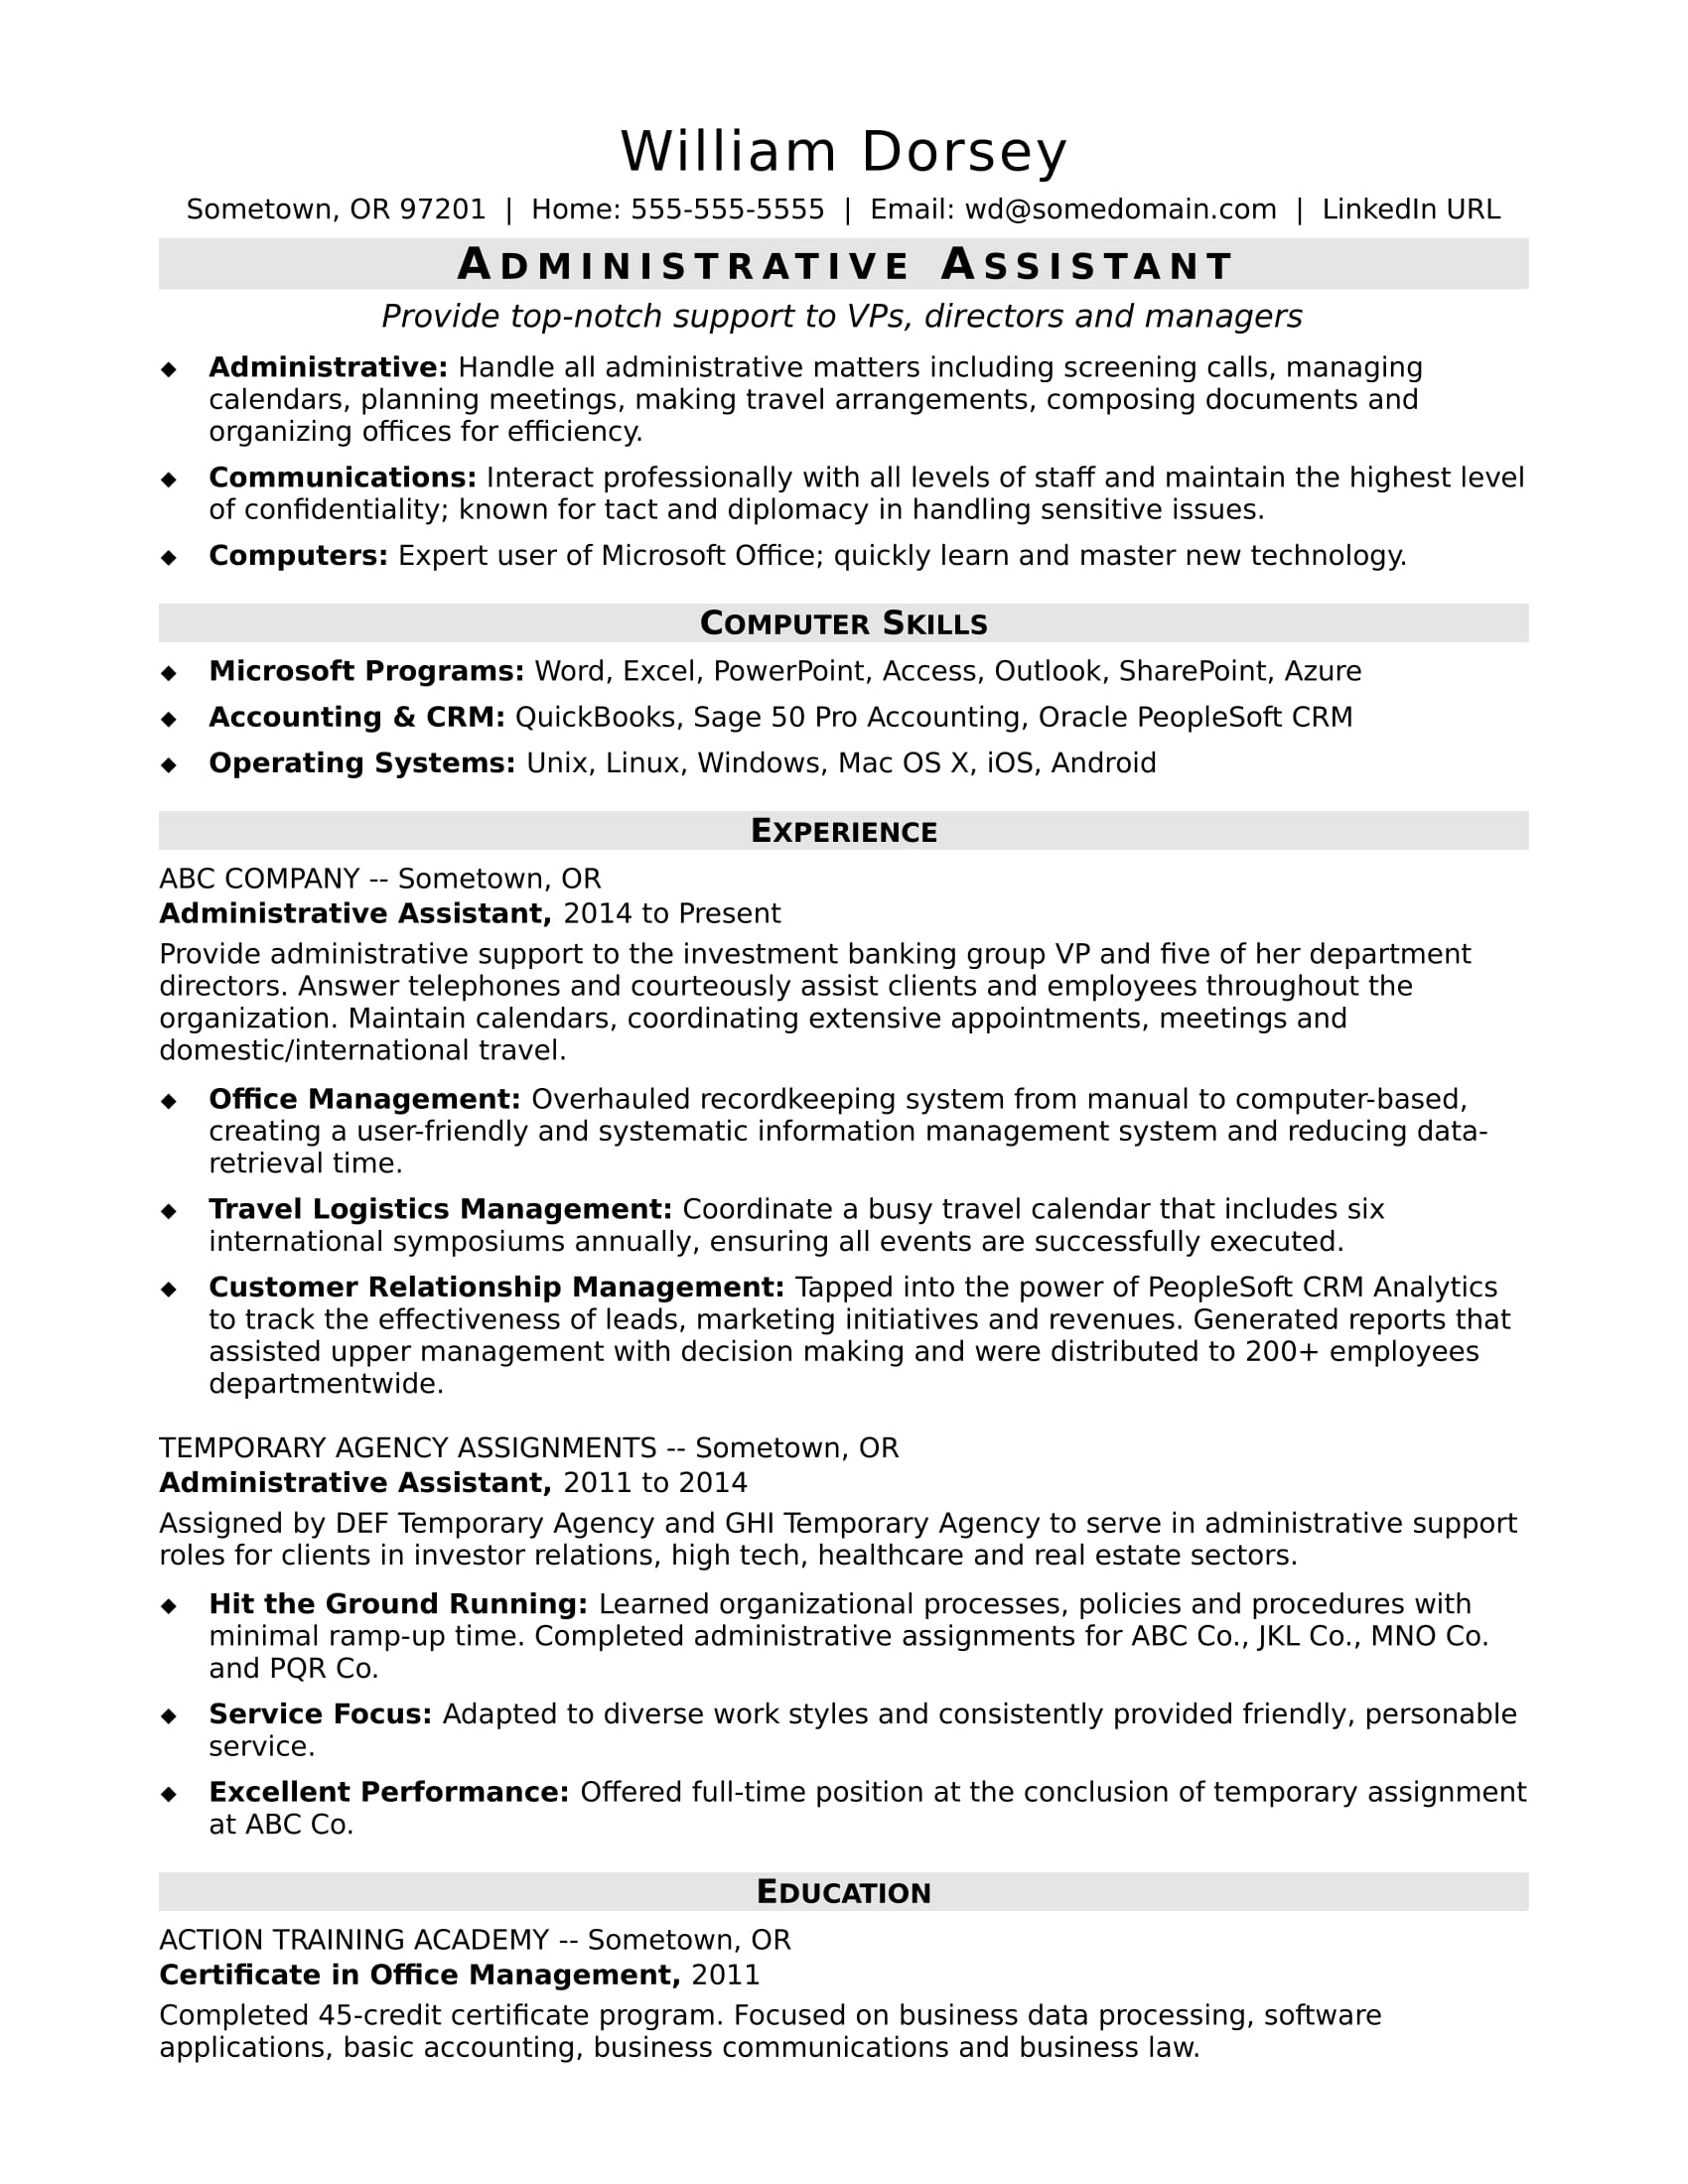 midlevel administrative assistant resume sample monster executive template hote albert Resume Executive Assistant Resume Template